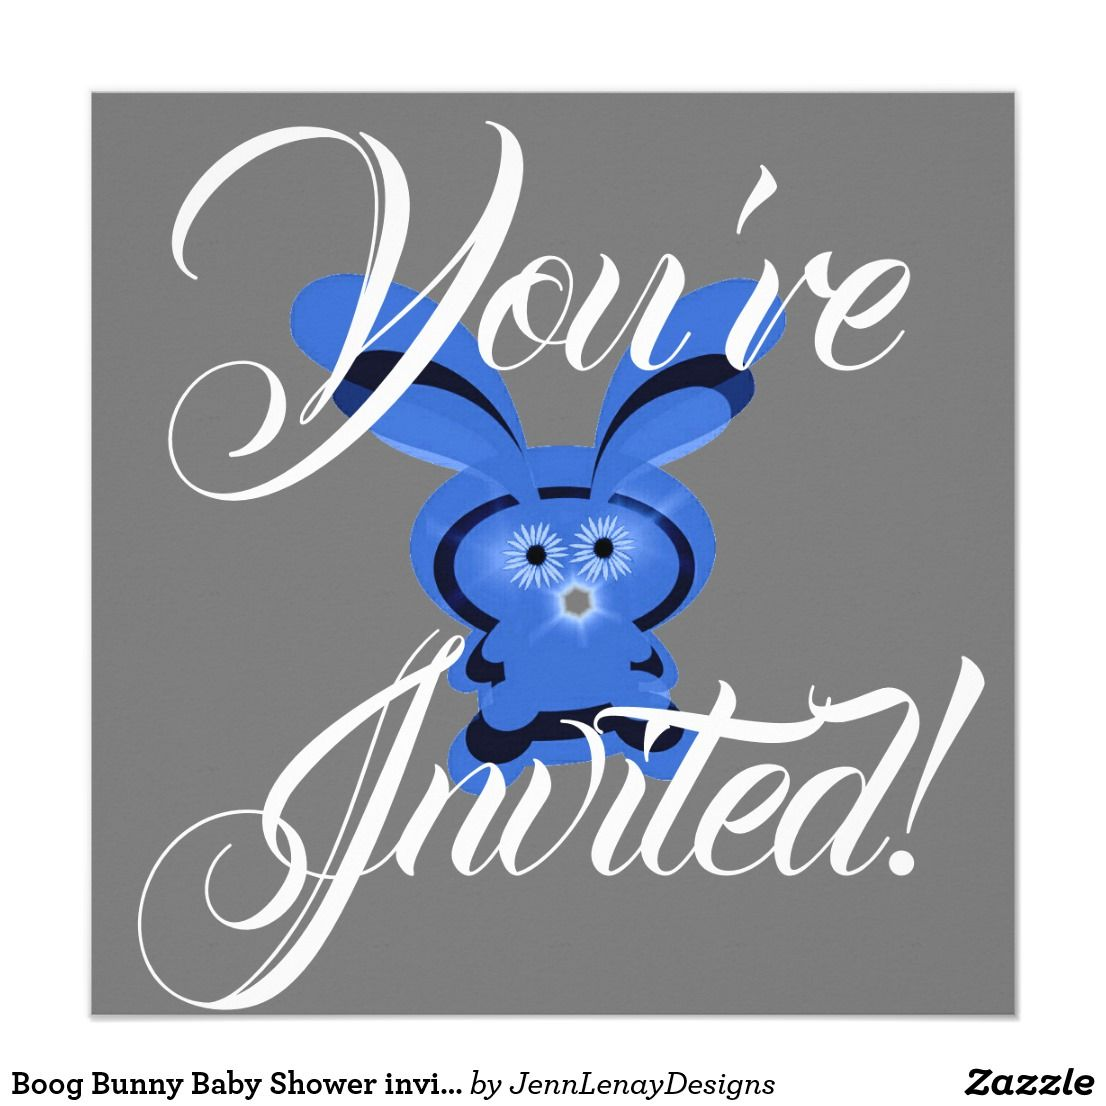 Boog bunny baby shower invitation new 2018 invitations postage boog bunny baby shower invitation stopboris Image collections